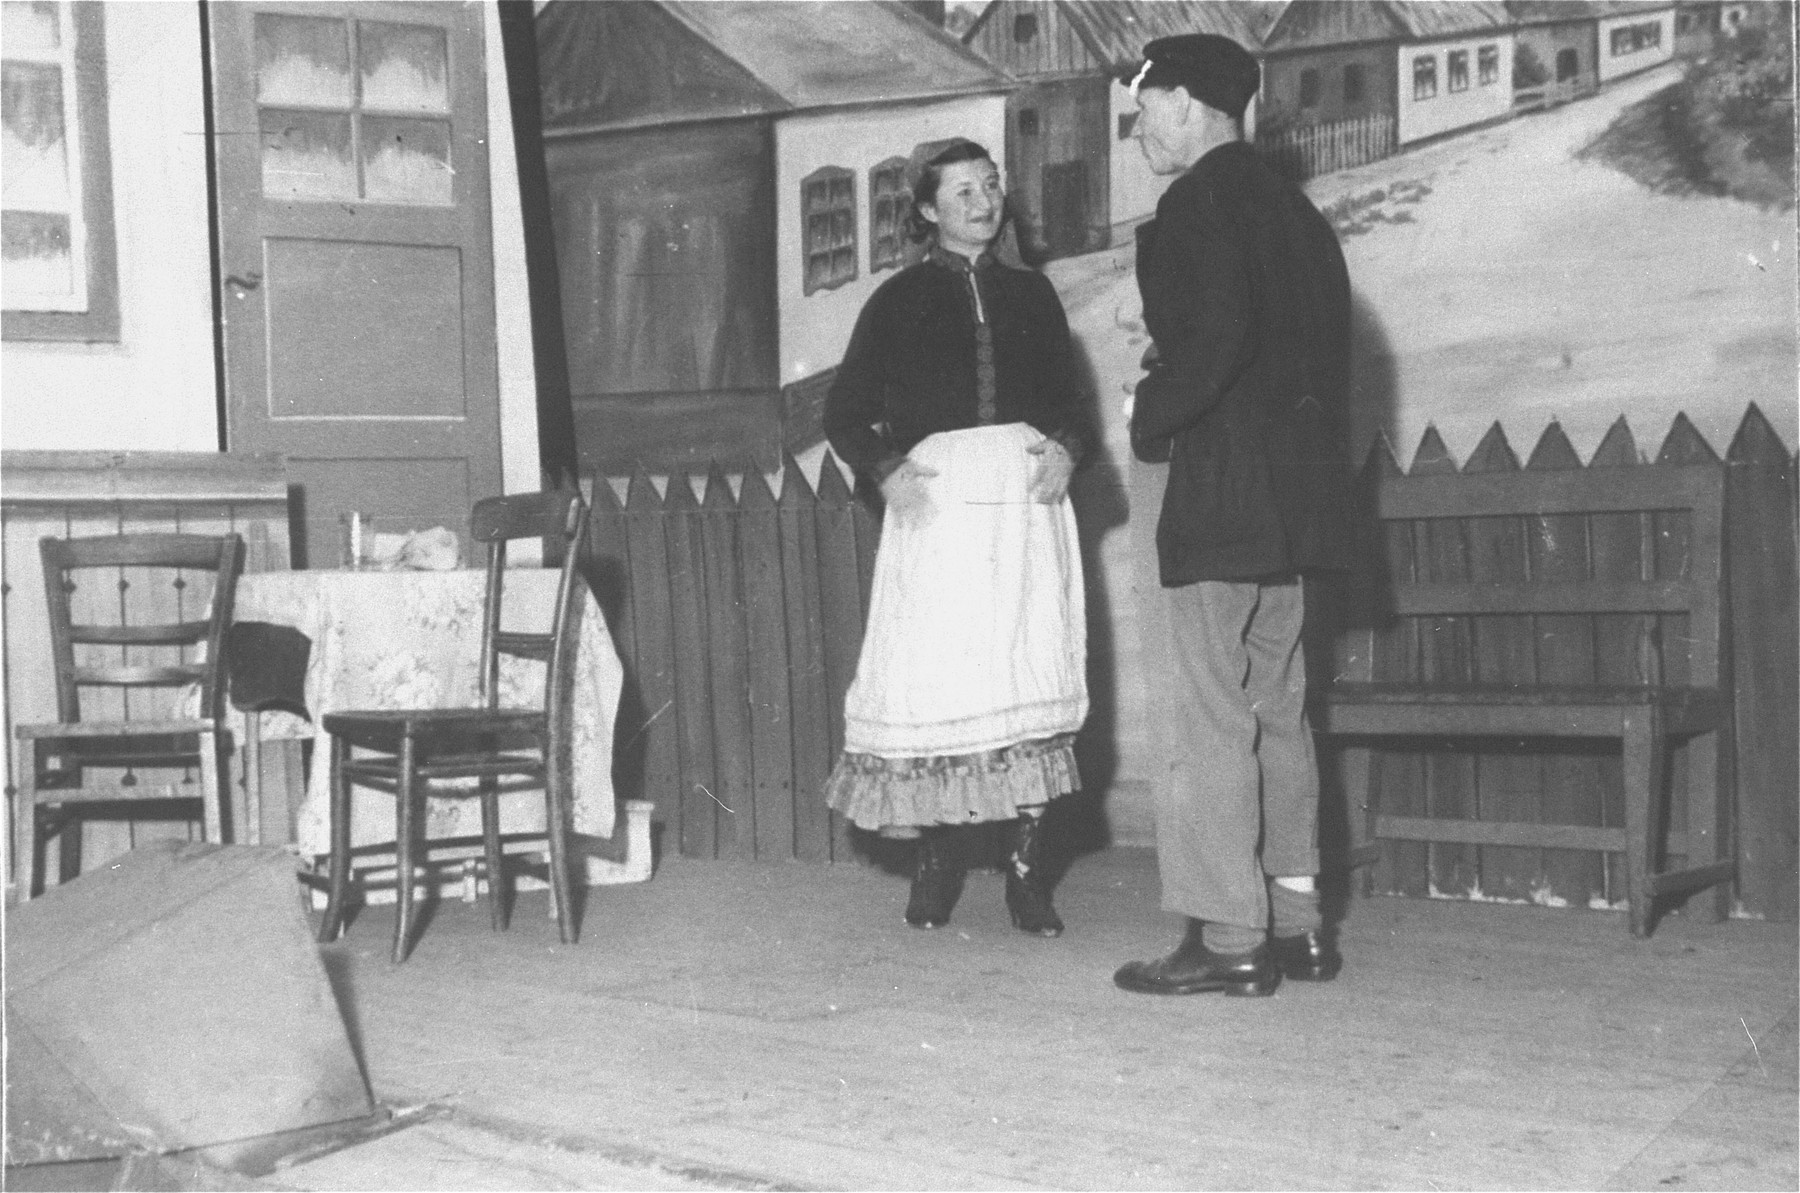 A theatrical troupe in performs in the Zeilsheim displaced persons' camp.